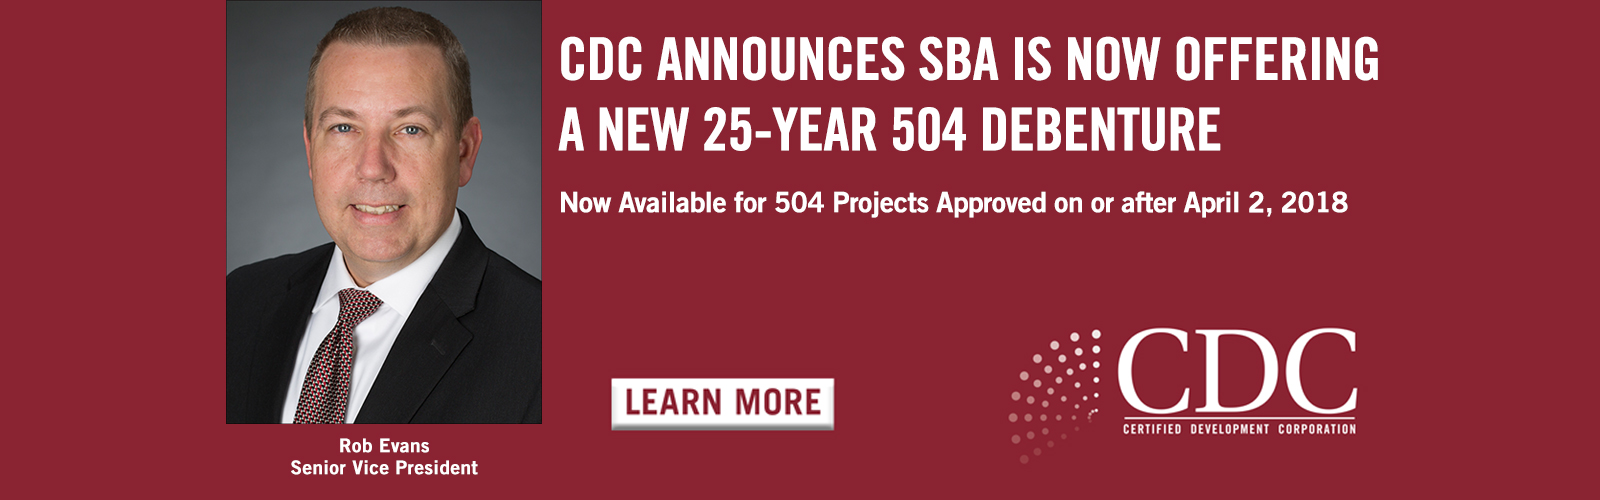 CDC Announces SBA is Now Offering a New 25-Year 504 Debenture